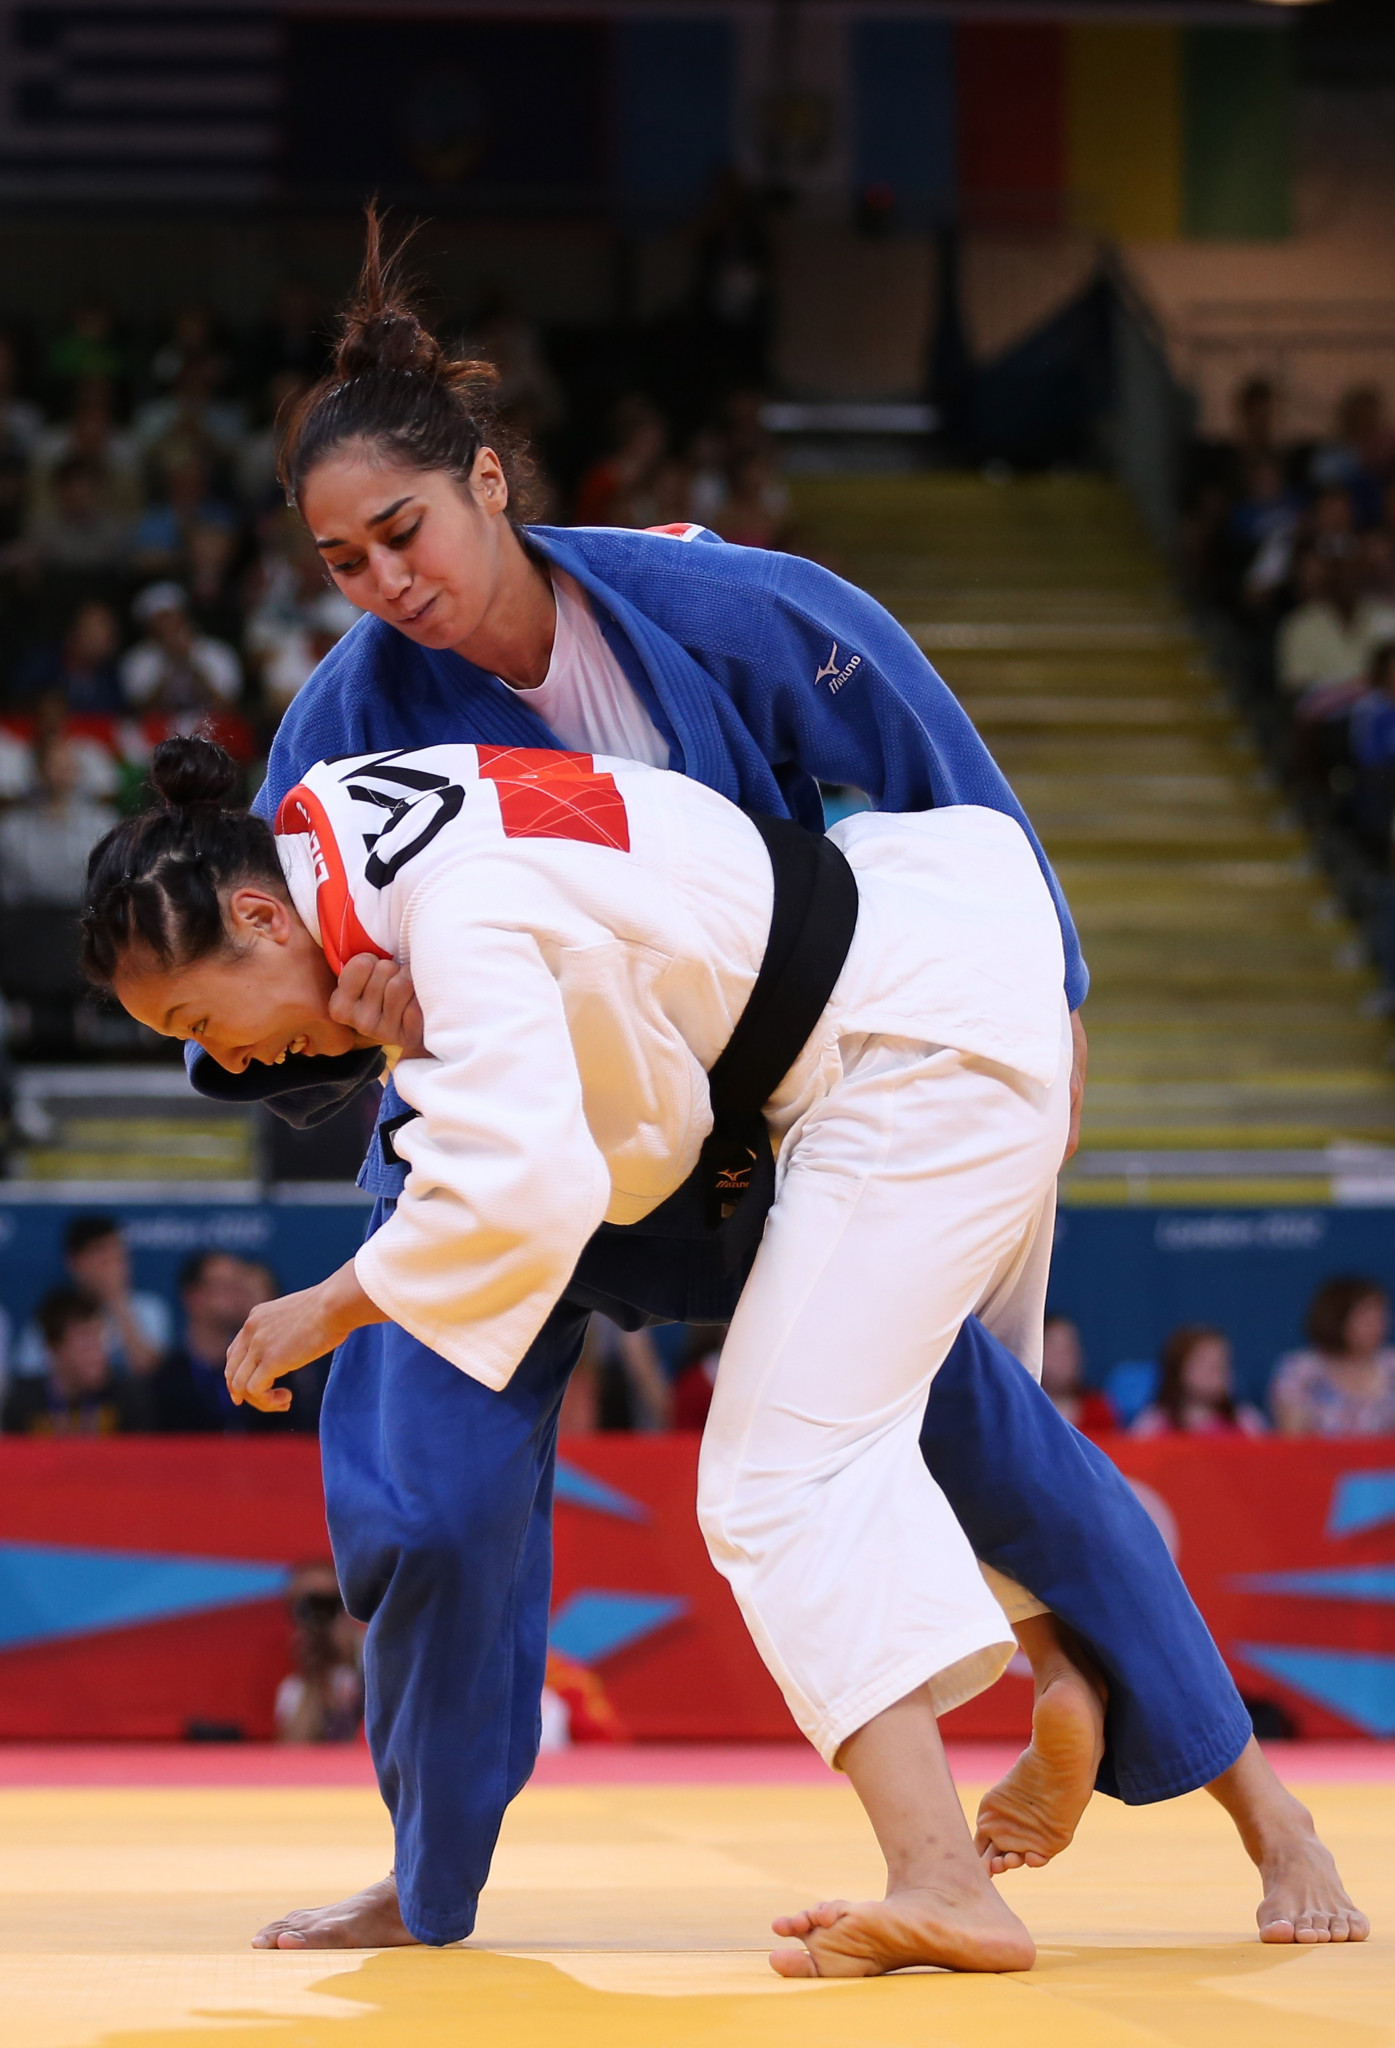 Jennifer Anson represented Palau at the London 2012 Olympic judo tournament ©Getty Images